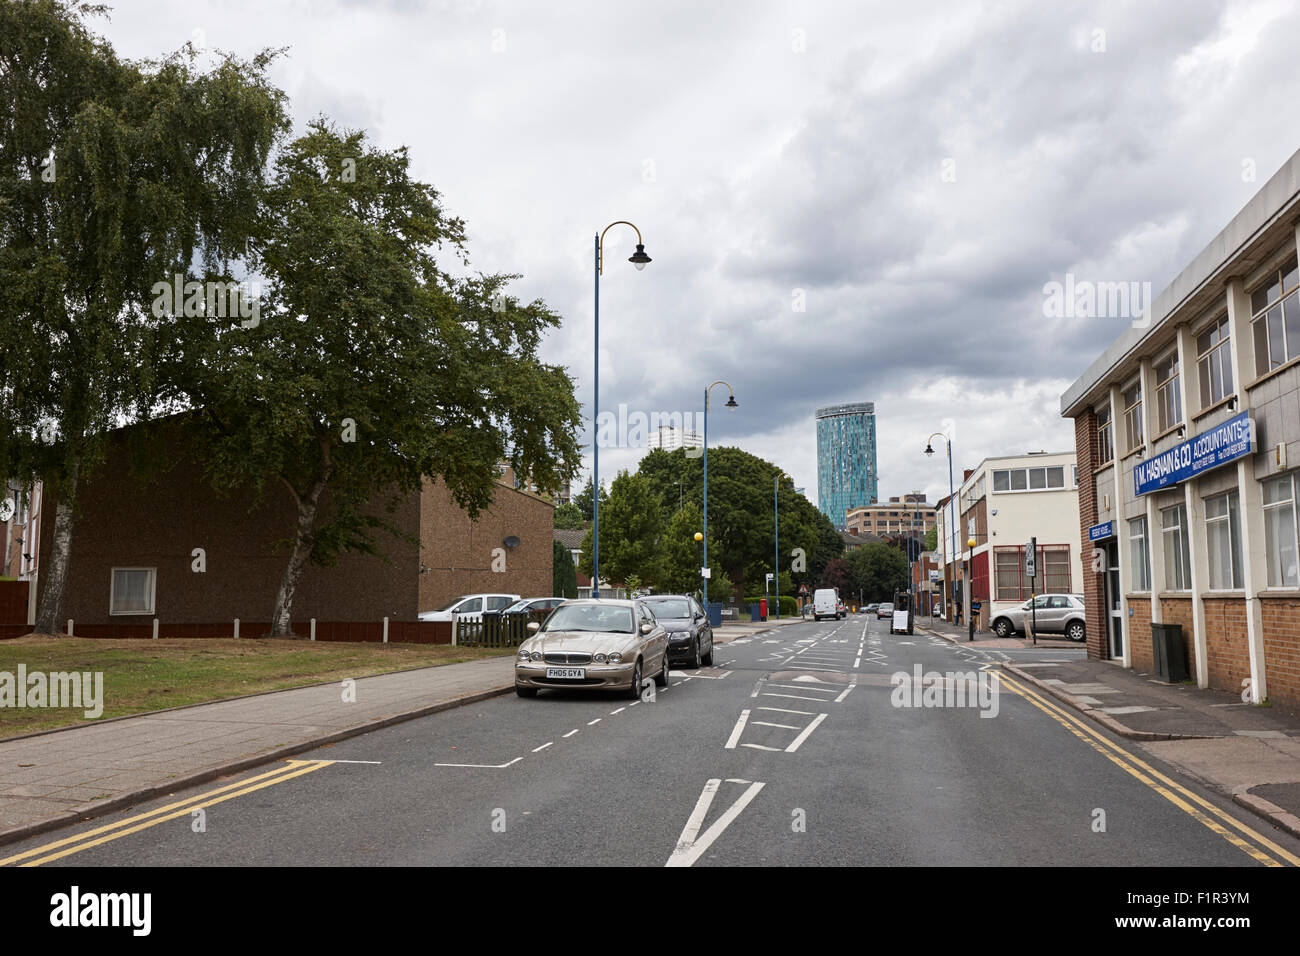 gooch street approach to Birmingham city centre UK - Stock Image